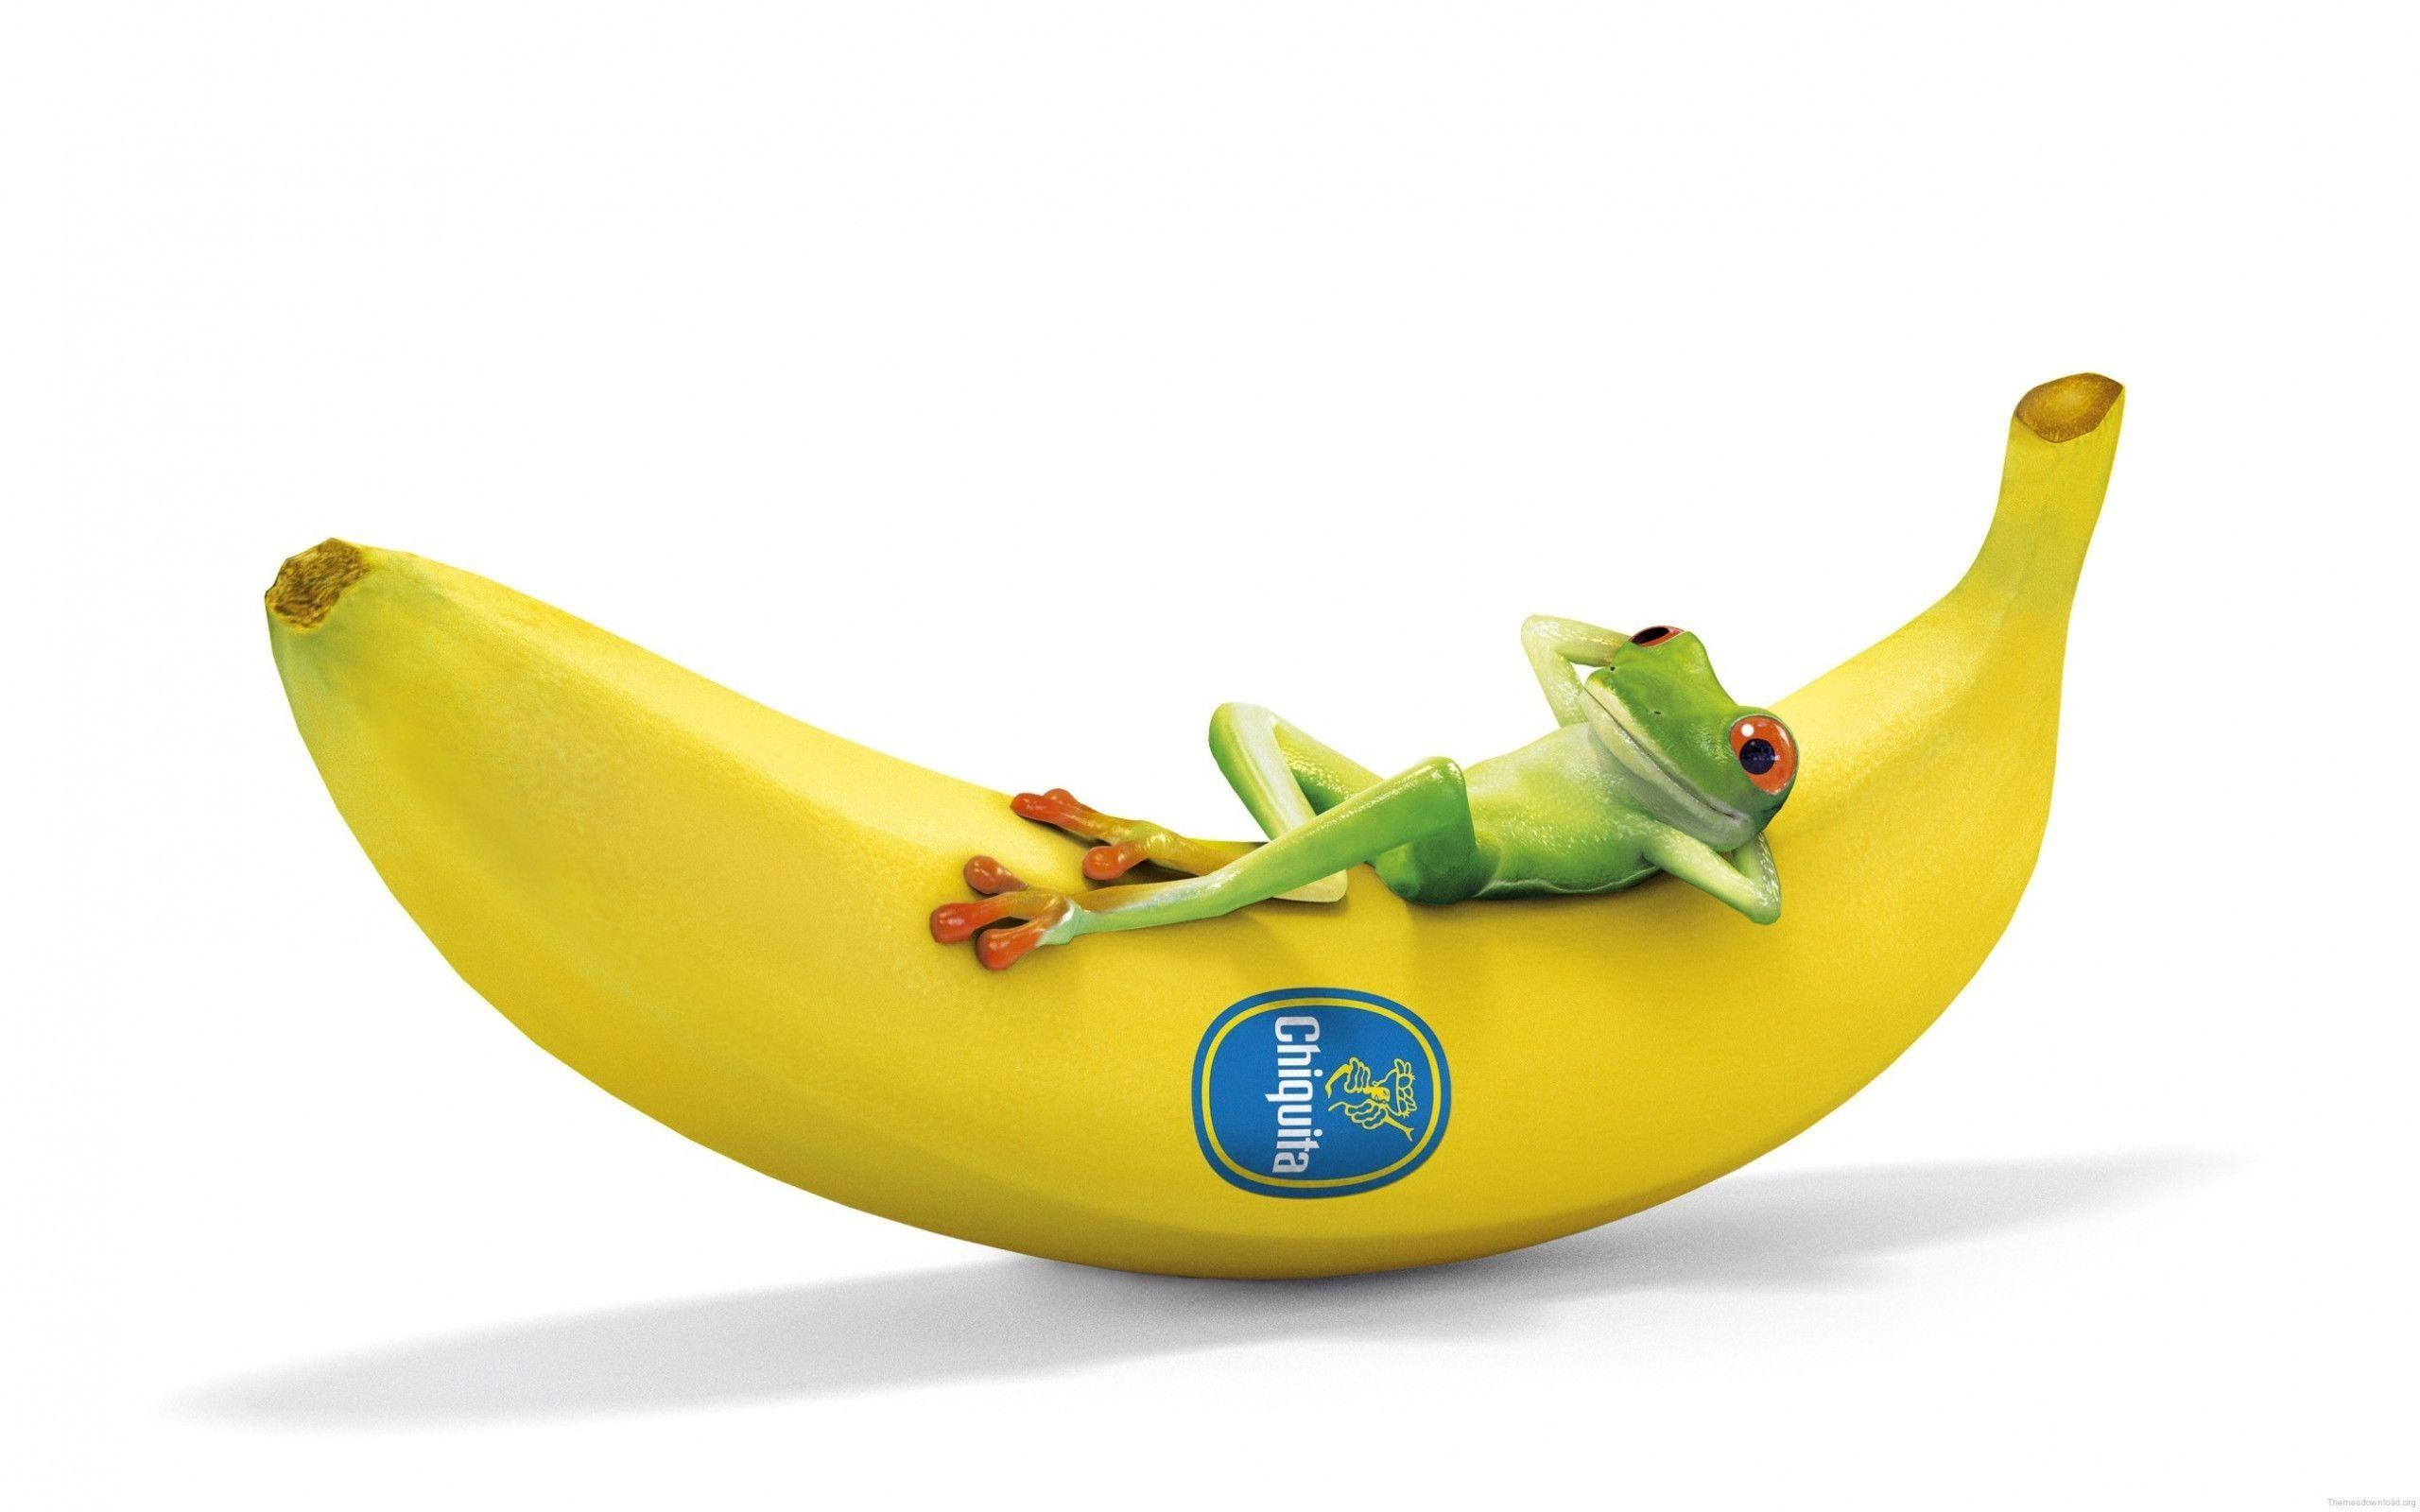 Funny Cartoon Frog And Banana Wallpapers Id